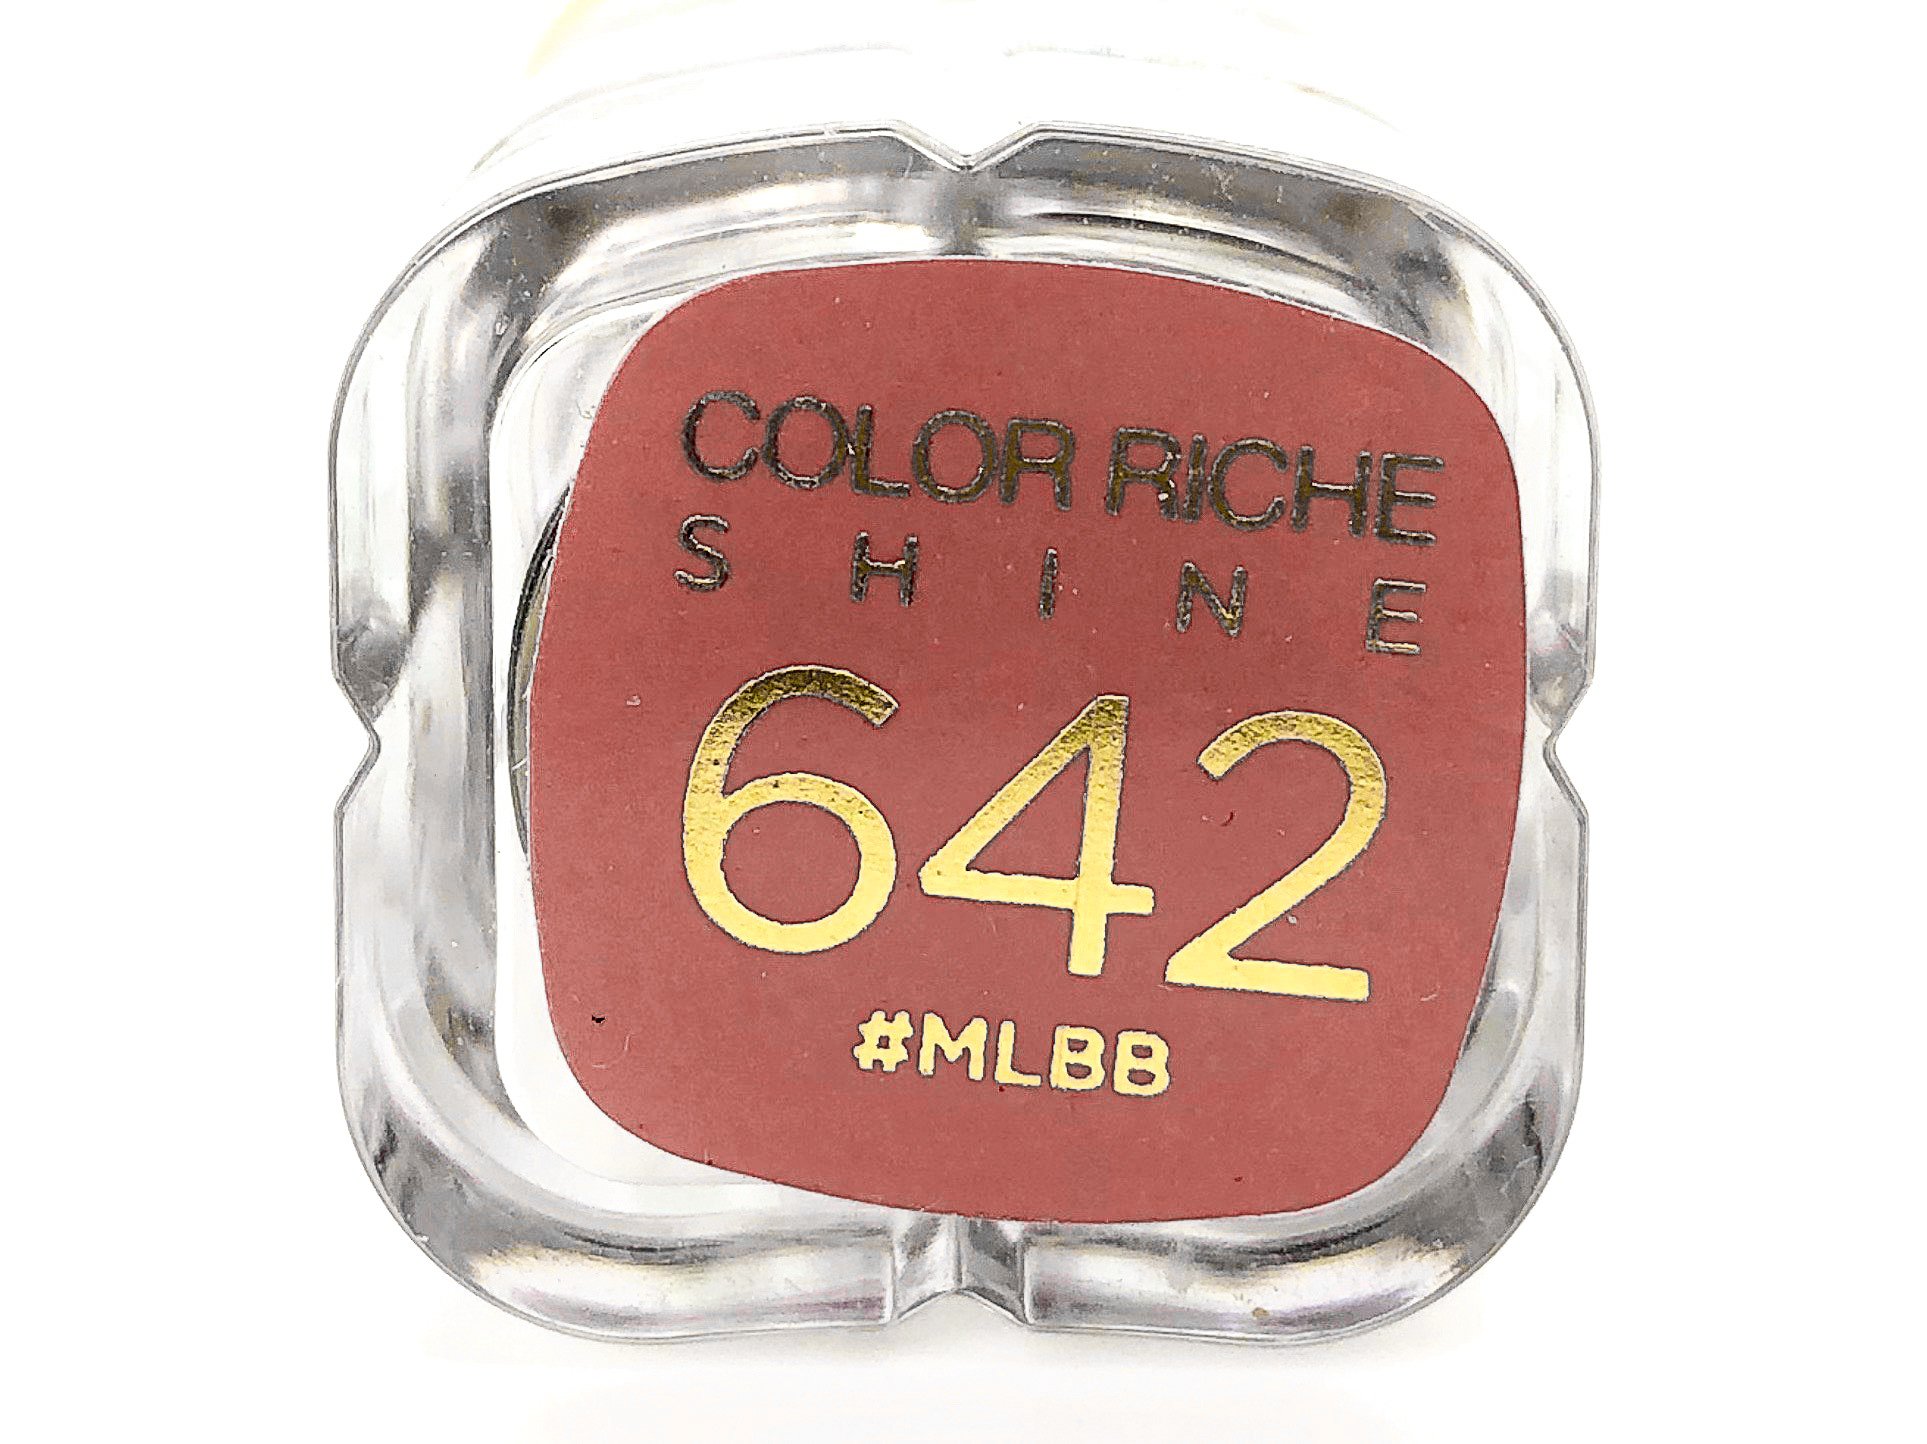 Review L'Oréal MLBB Color Riche Shine Lipstick (8)